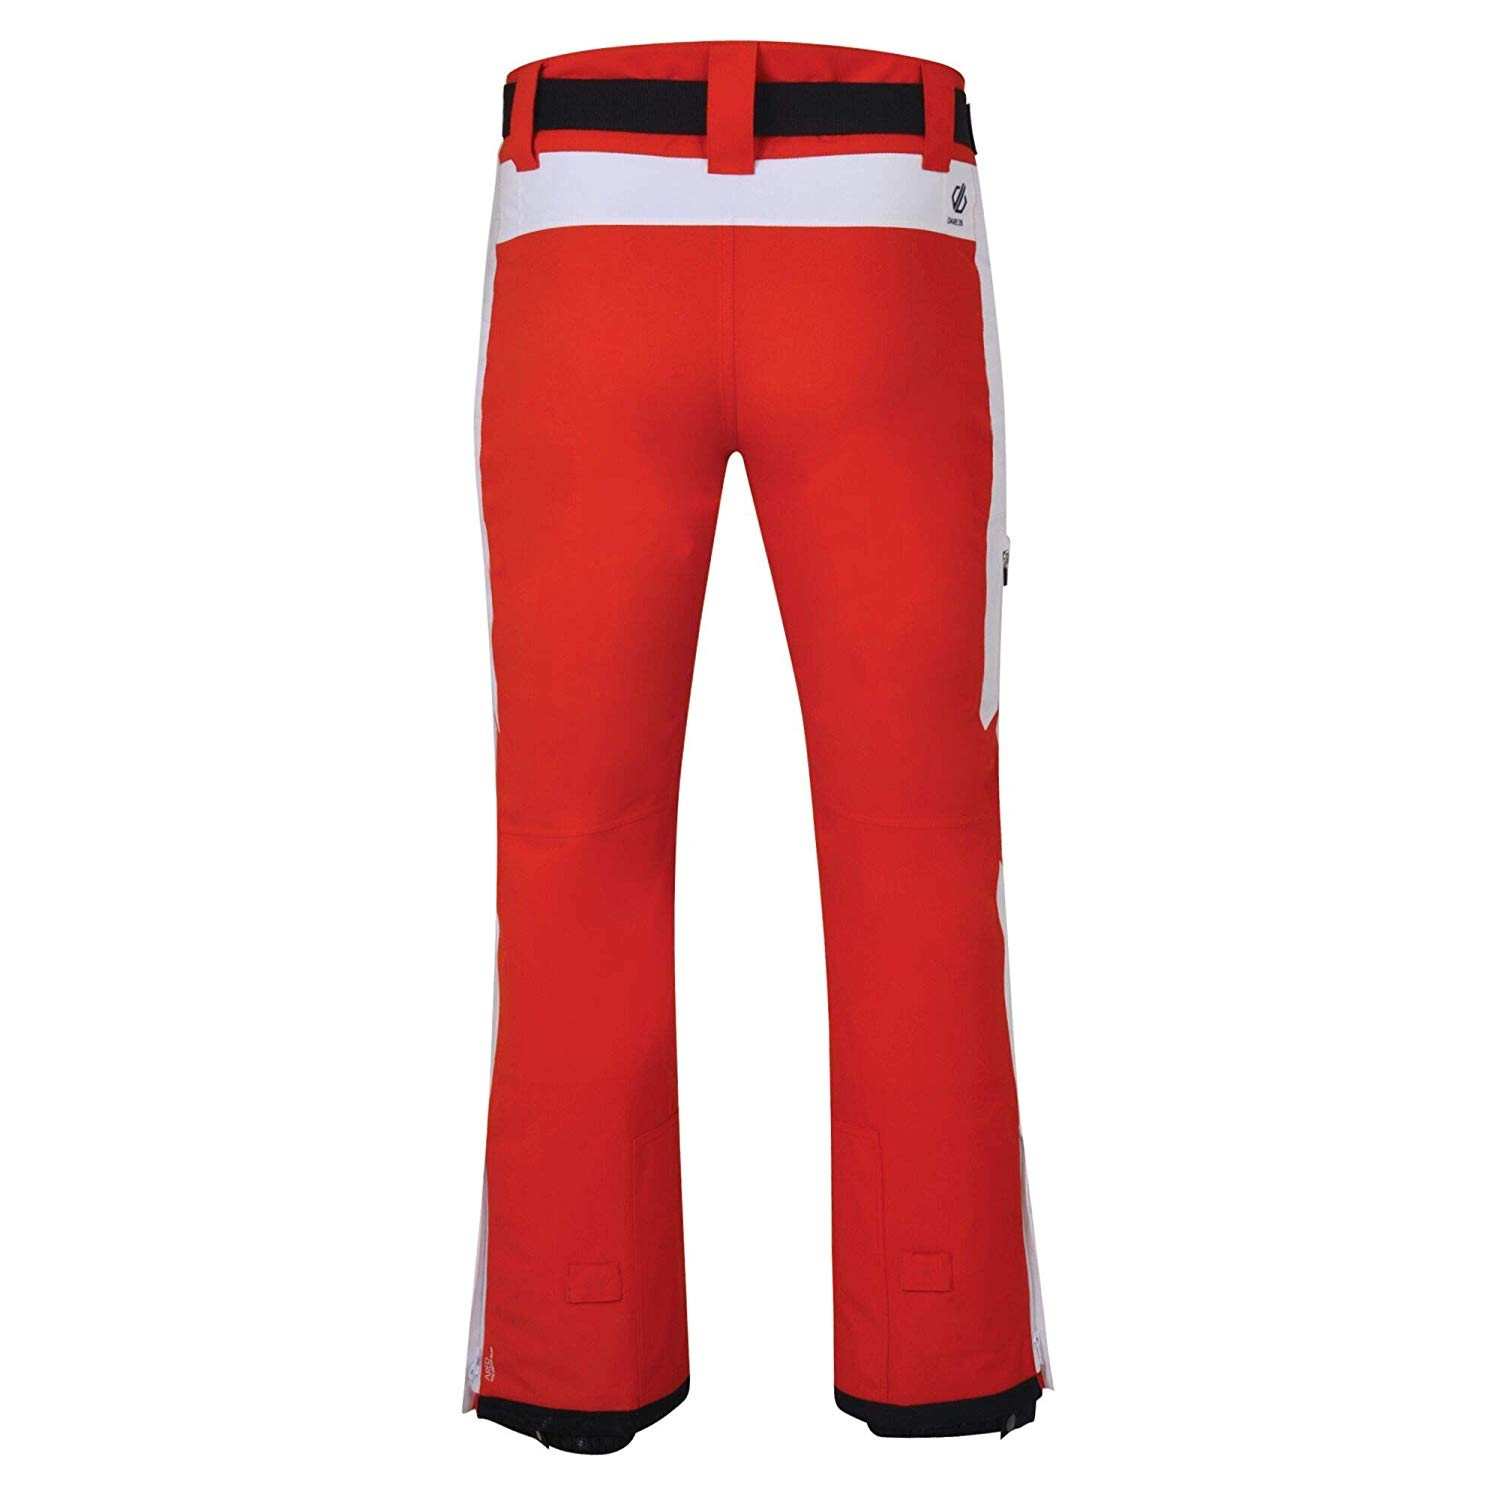 Dare 2b Black Label Herren Charge Out Skihose DMW467 rot-weiß